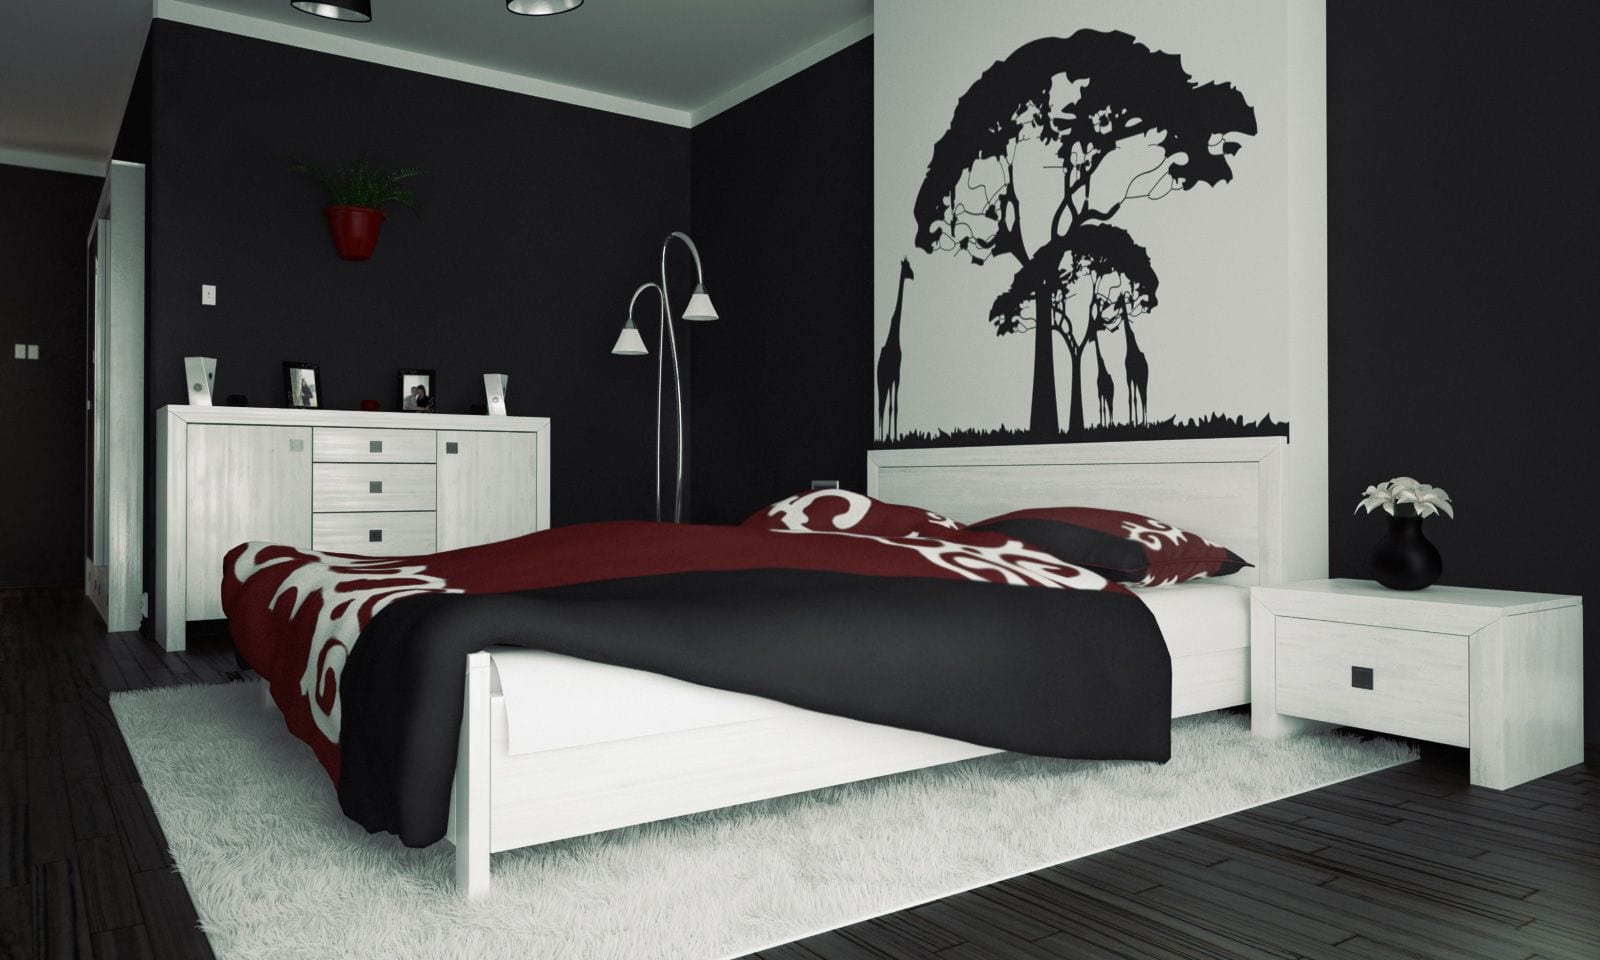 schwarze w nde 48 wohnideen f r moderne raumgestaltung freshouse. Black Bedroom Furniture Sets. Home Design Ideas